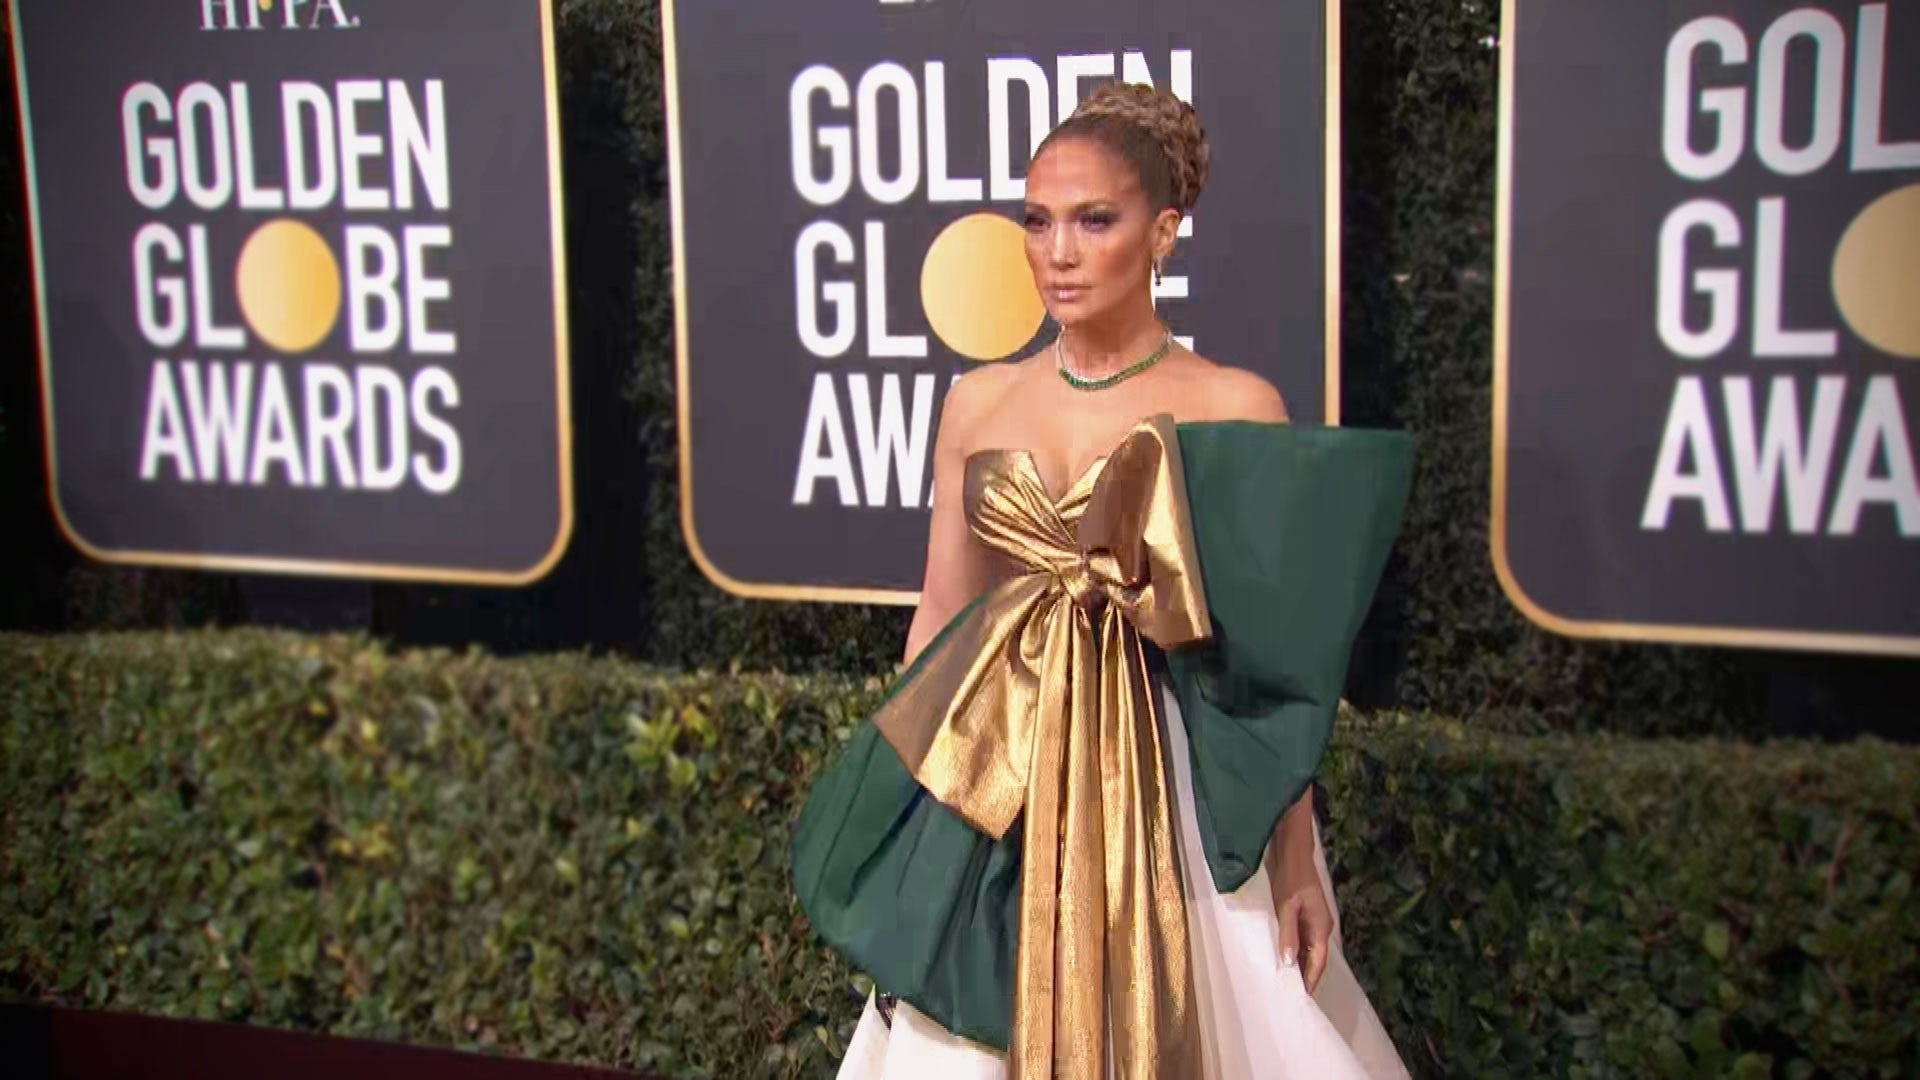 Jennifer Lopez Stuns in Dramatic Green,and,Gold Bow Gown at